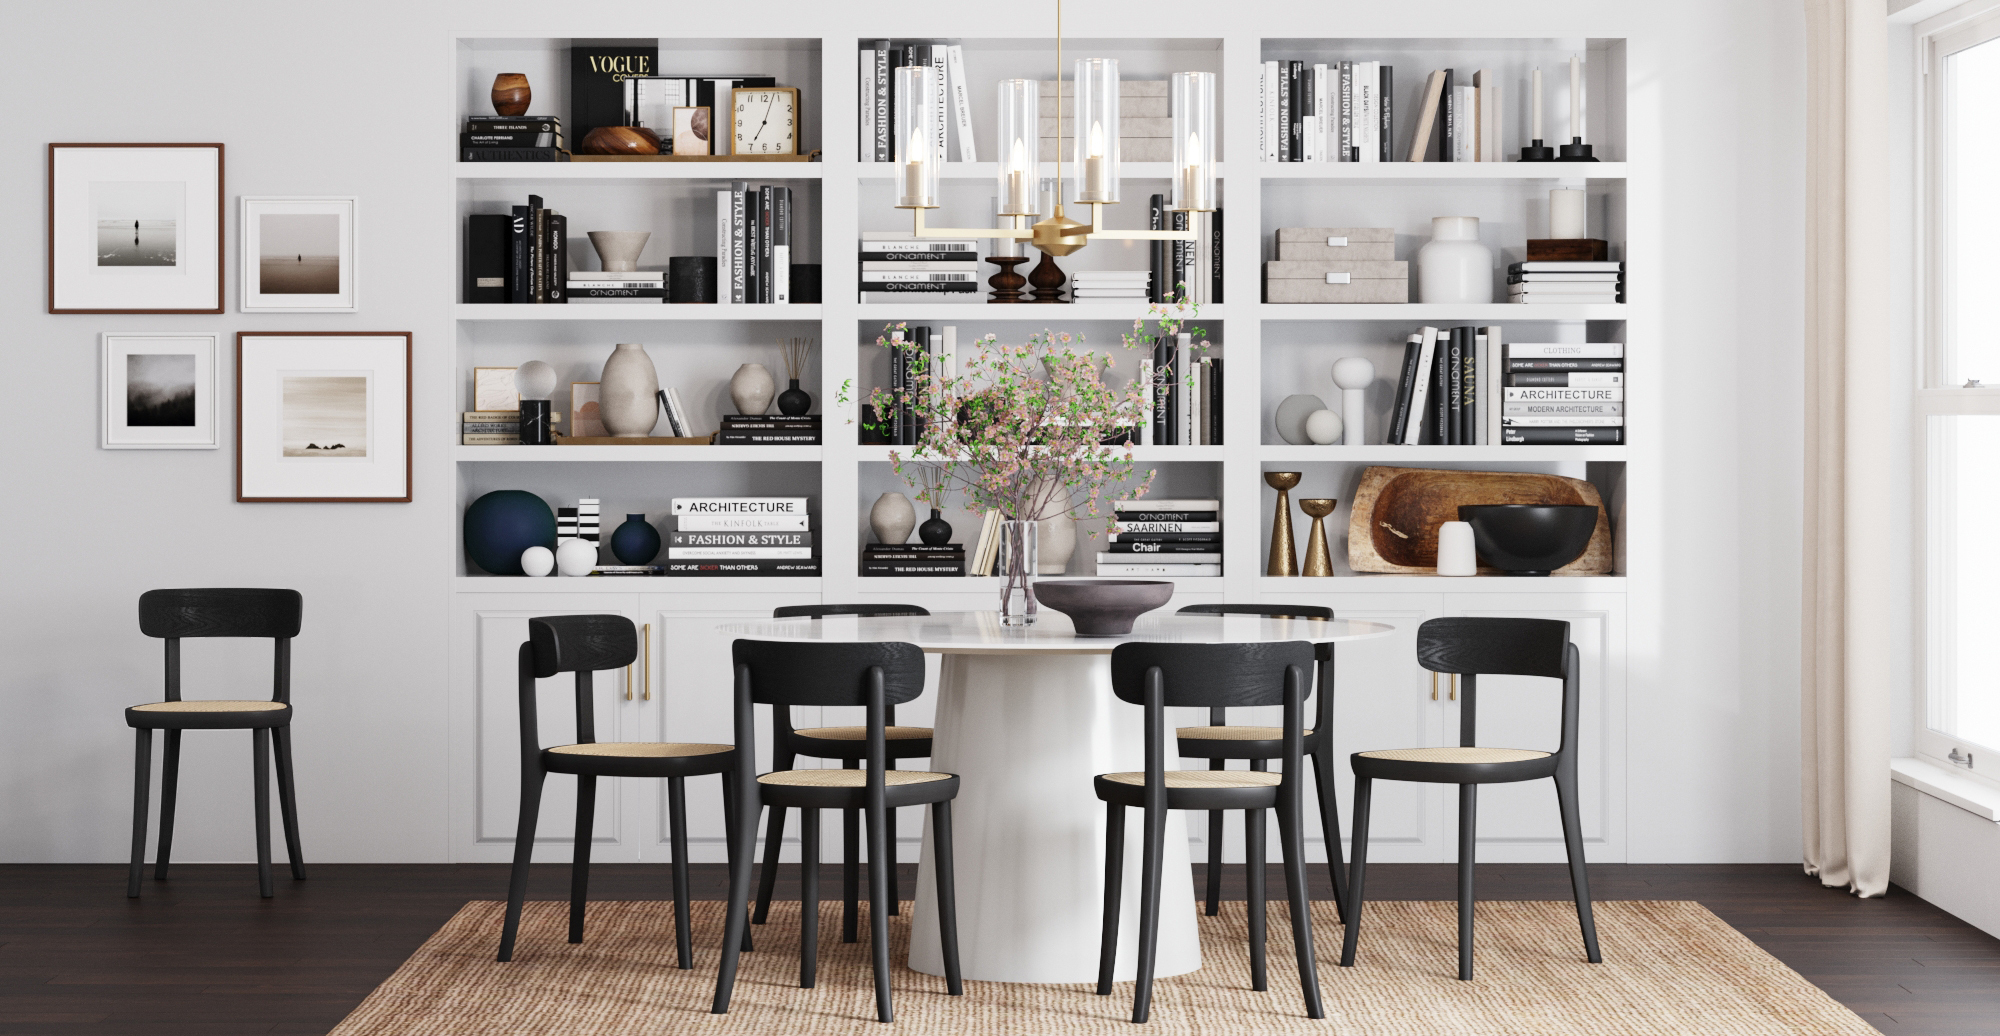 Brosa Bianca Dining Chairs and Kreis Dining Table styled in new Art Deco dining room